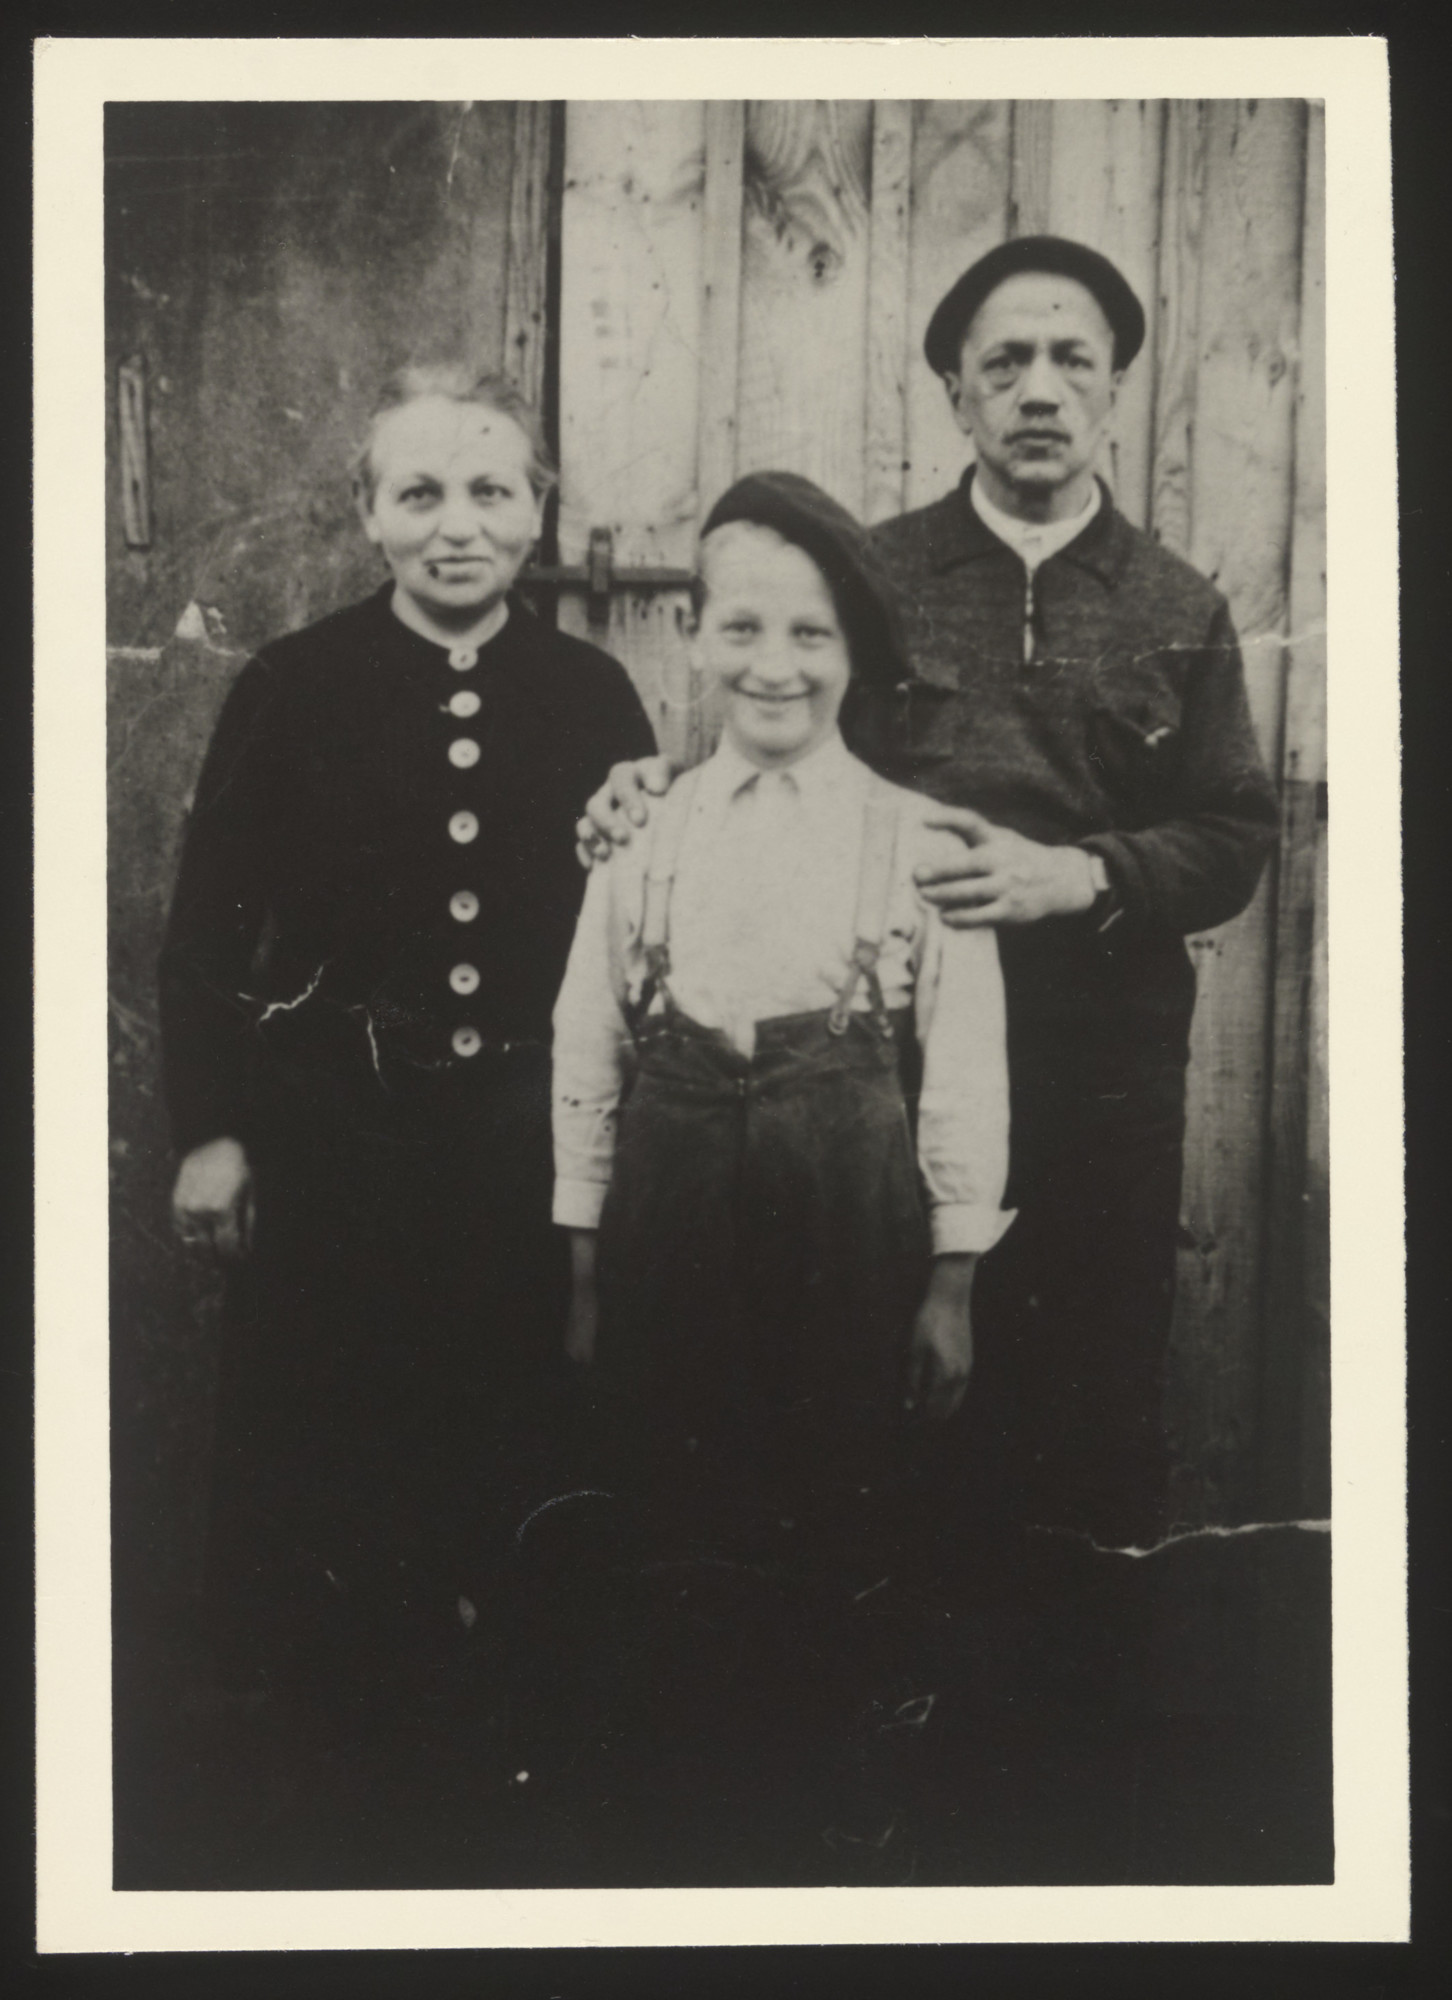 Heinz Mayer poses with his parents in the Gurs transit camp.